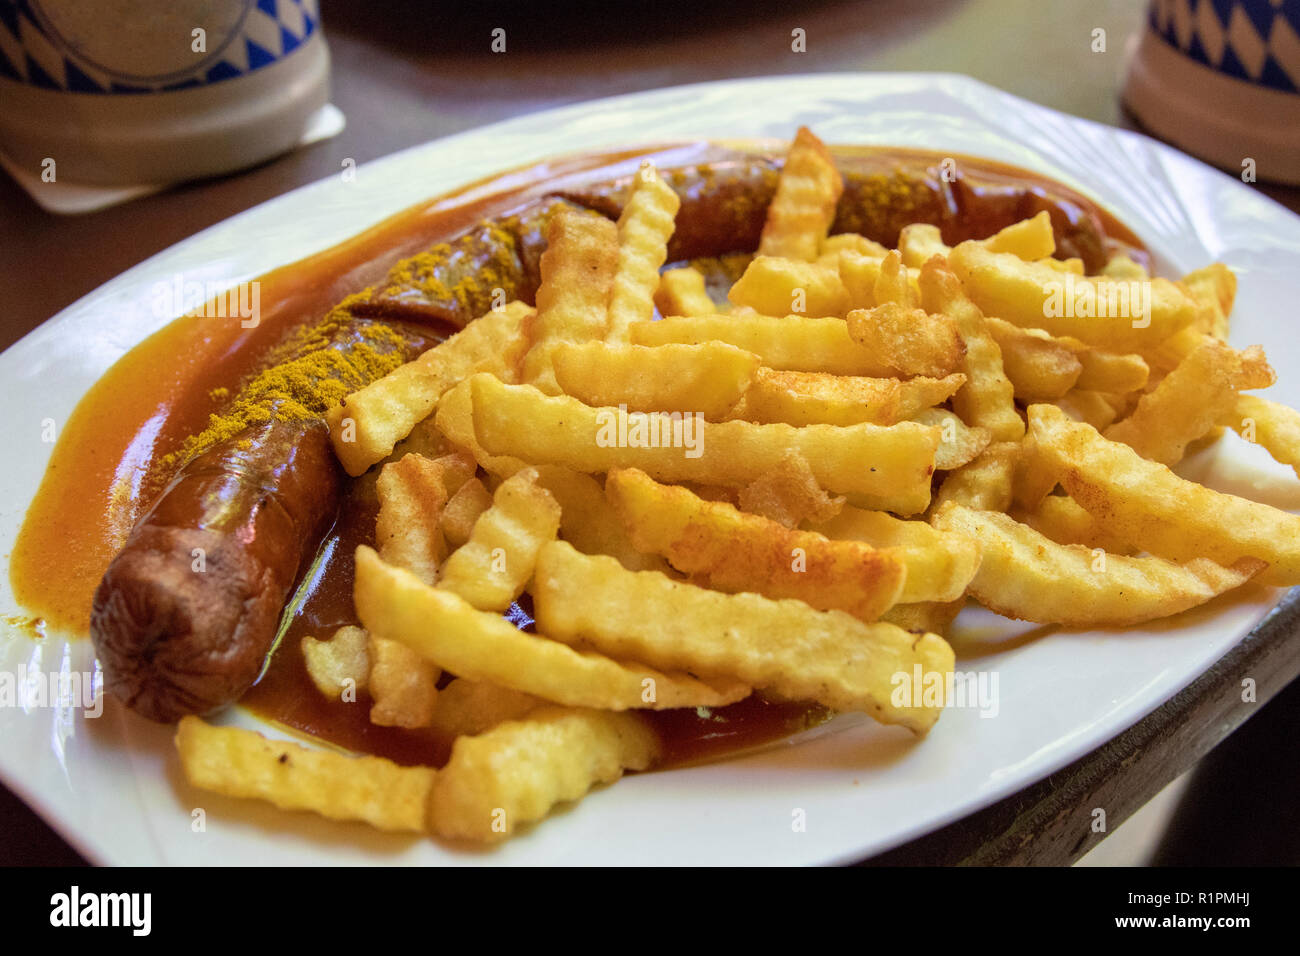 Currywurst Curry Wurst Tedesco Salsiccia E Patatine Fritte Close Up Food Fotografia Germania Piatto Cucina Tedesca Paprica Piccante Foto Stock Alamy